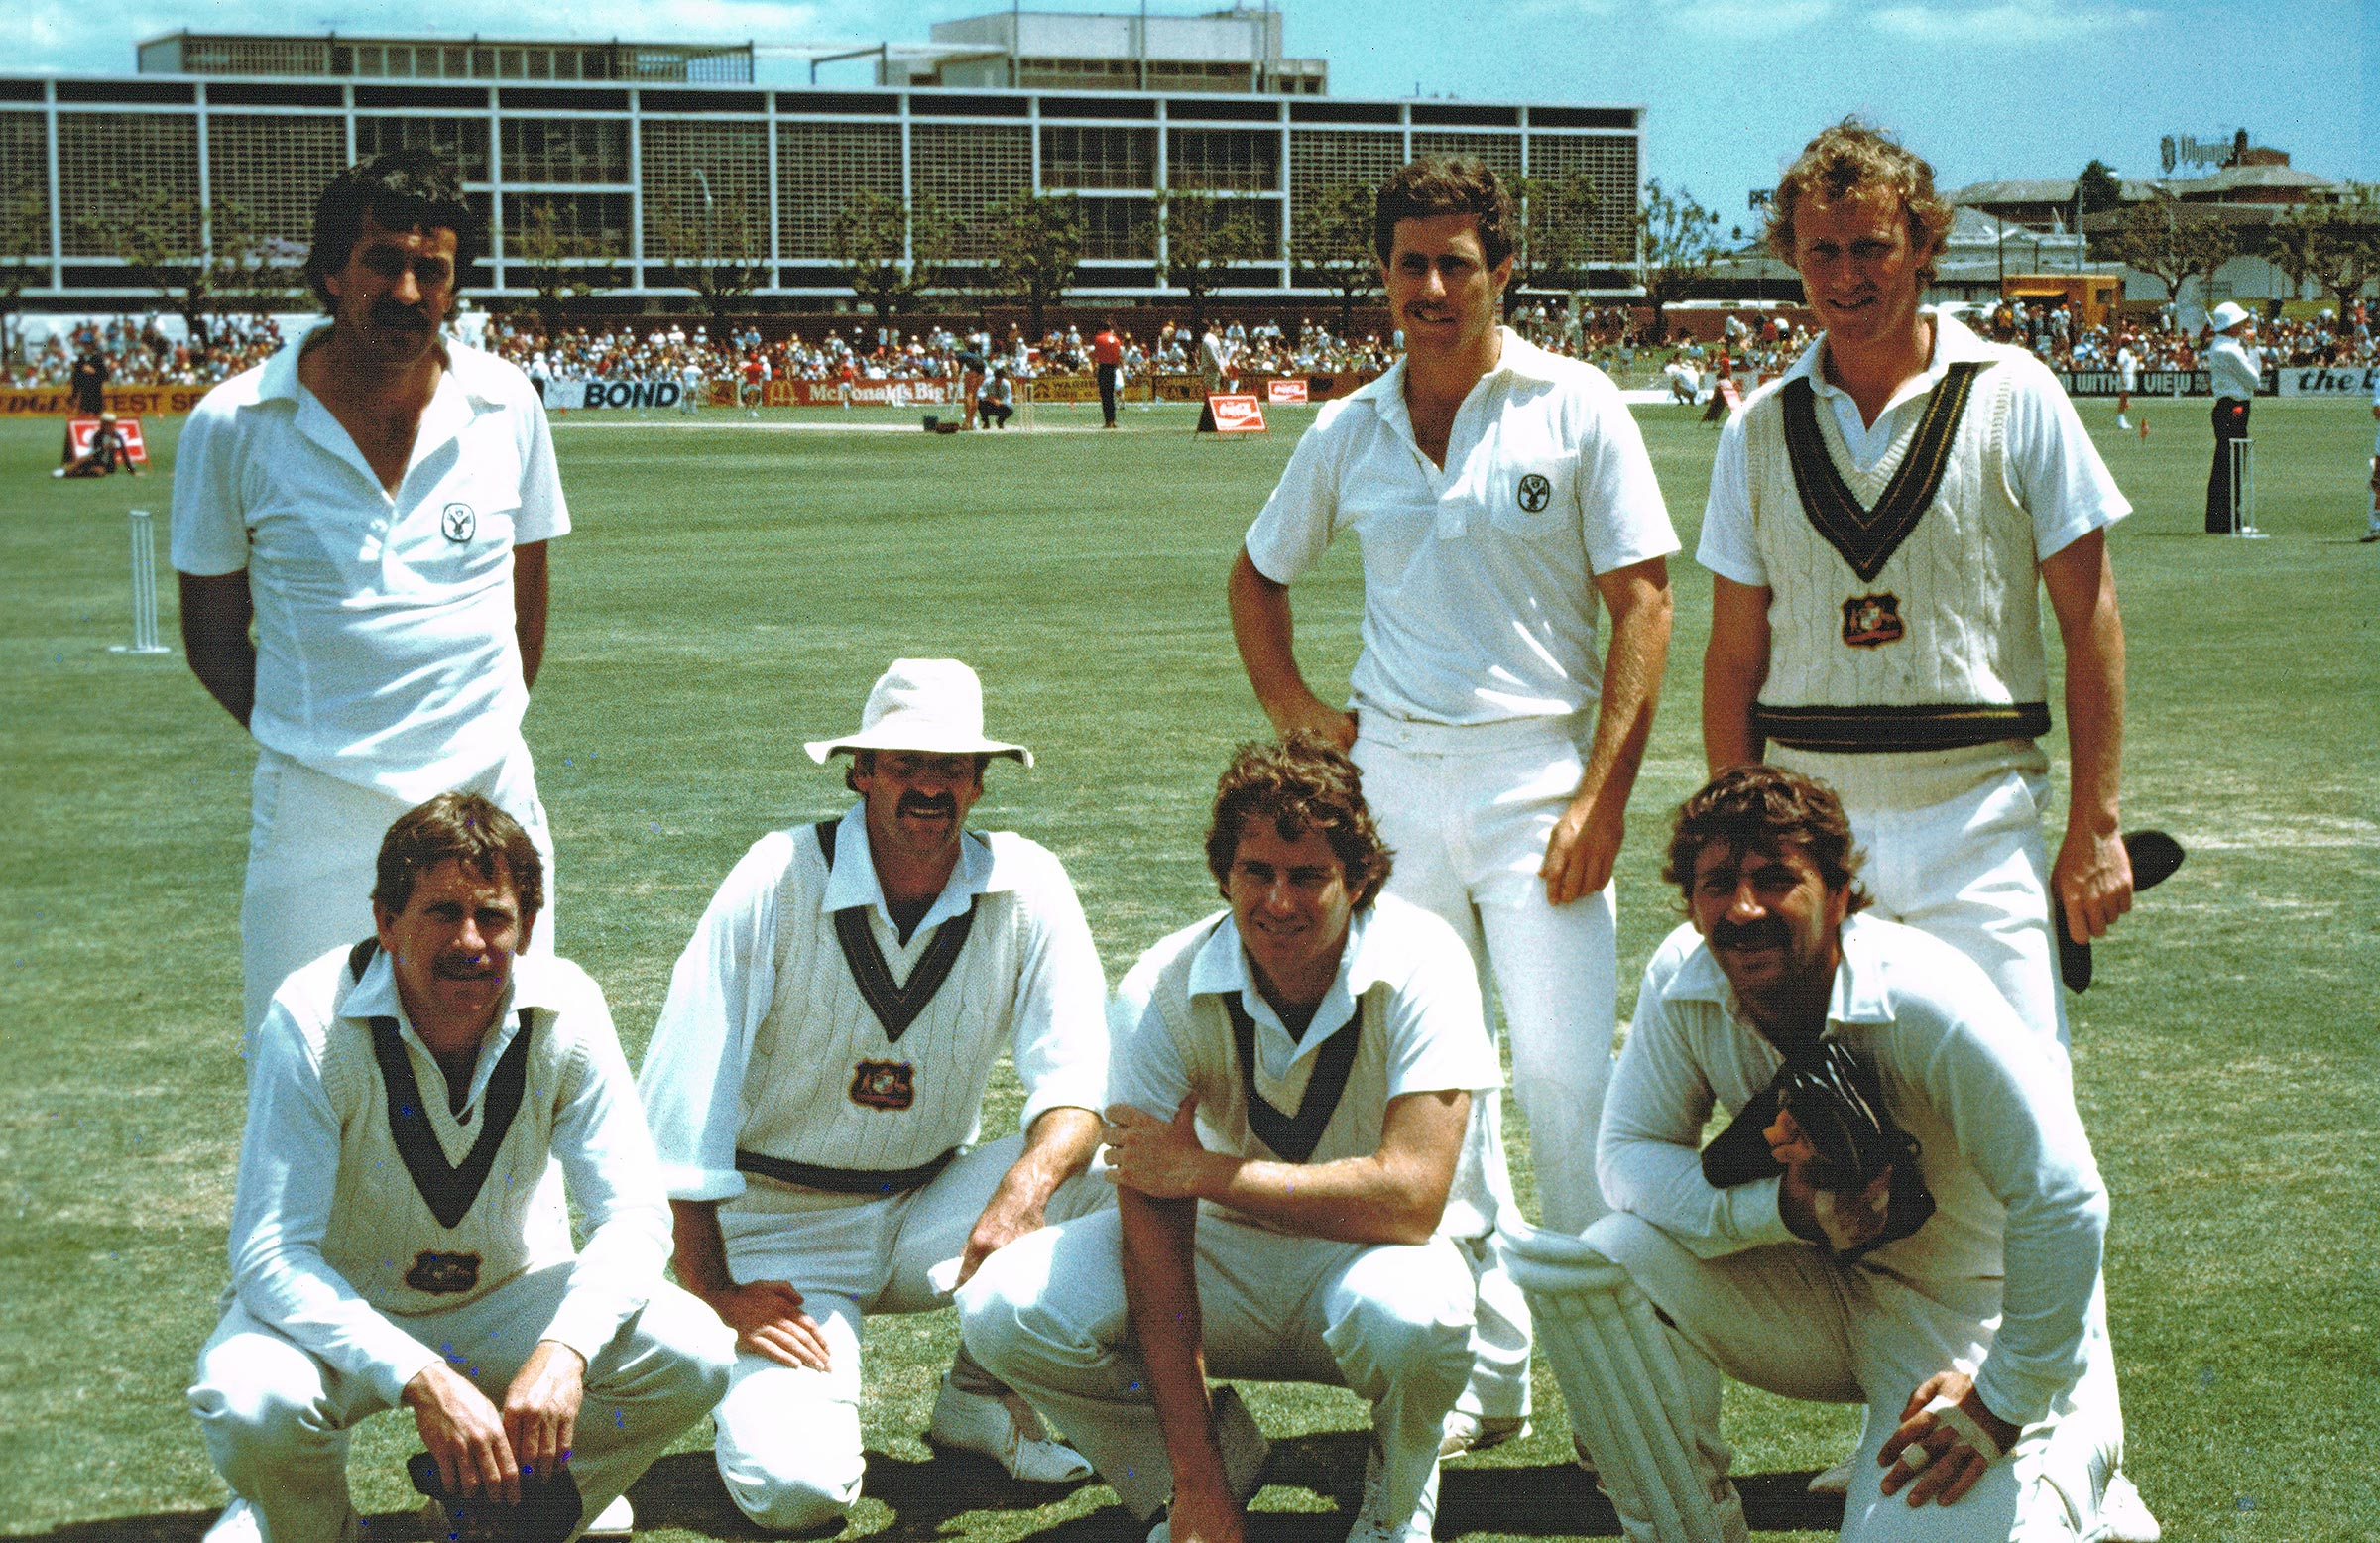 Yardley (top left) and WA's Test players in 1981